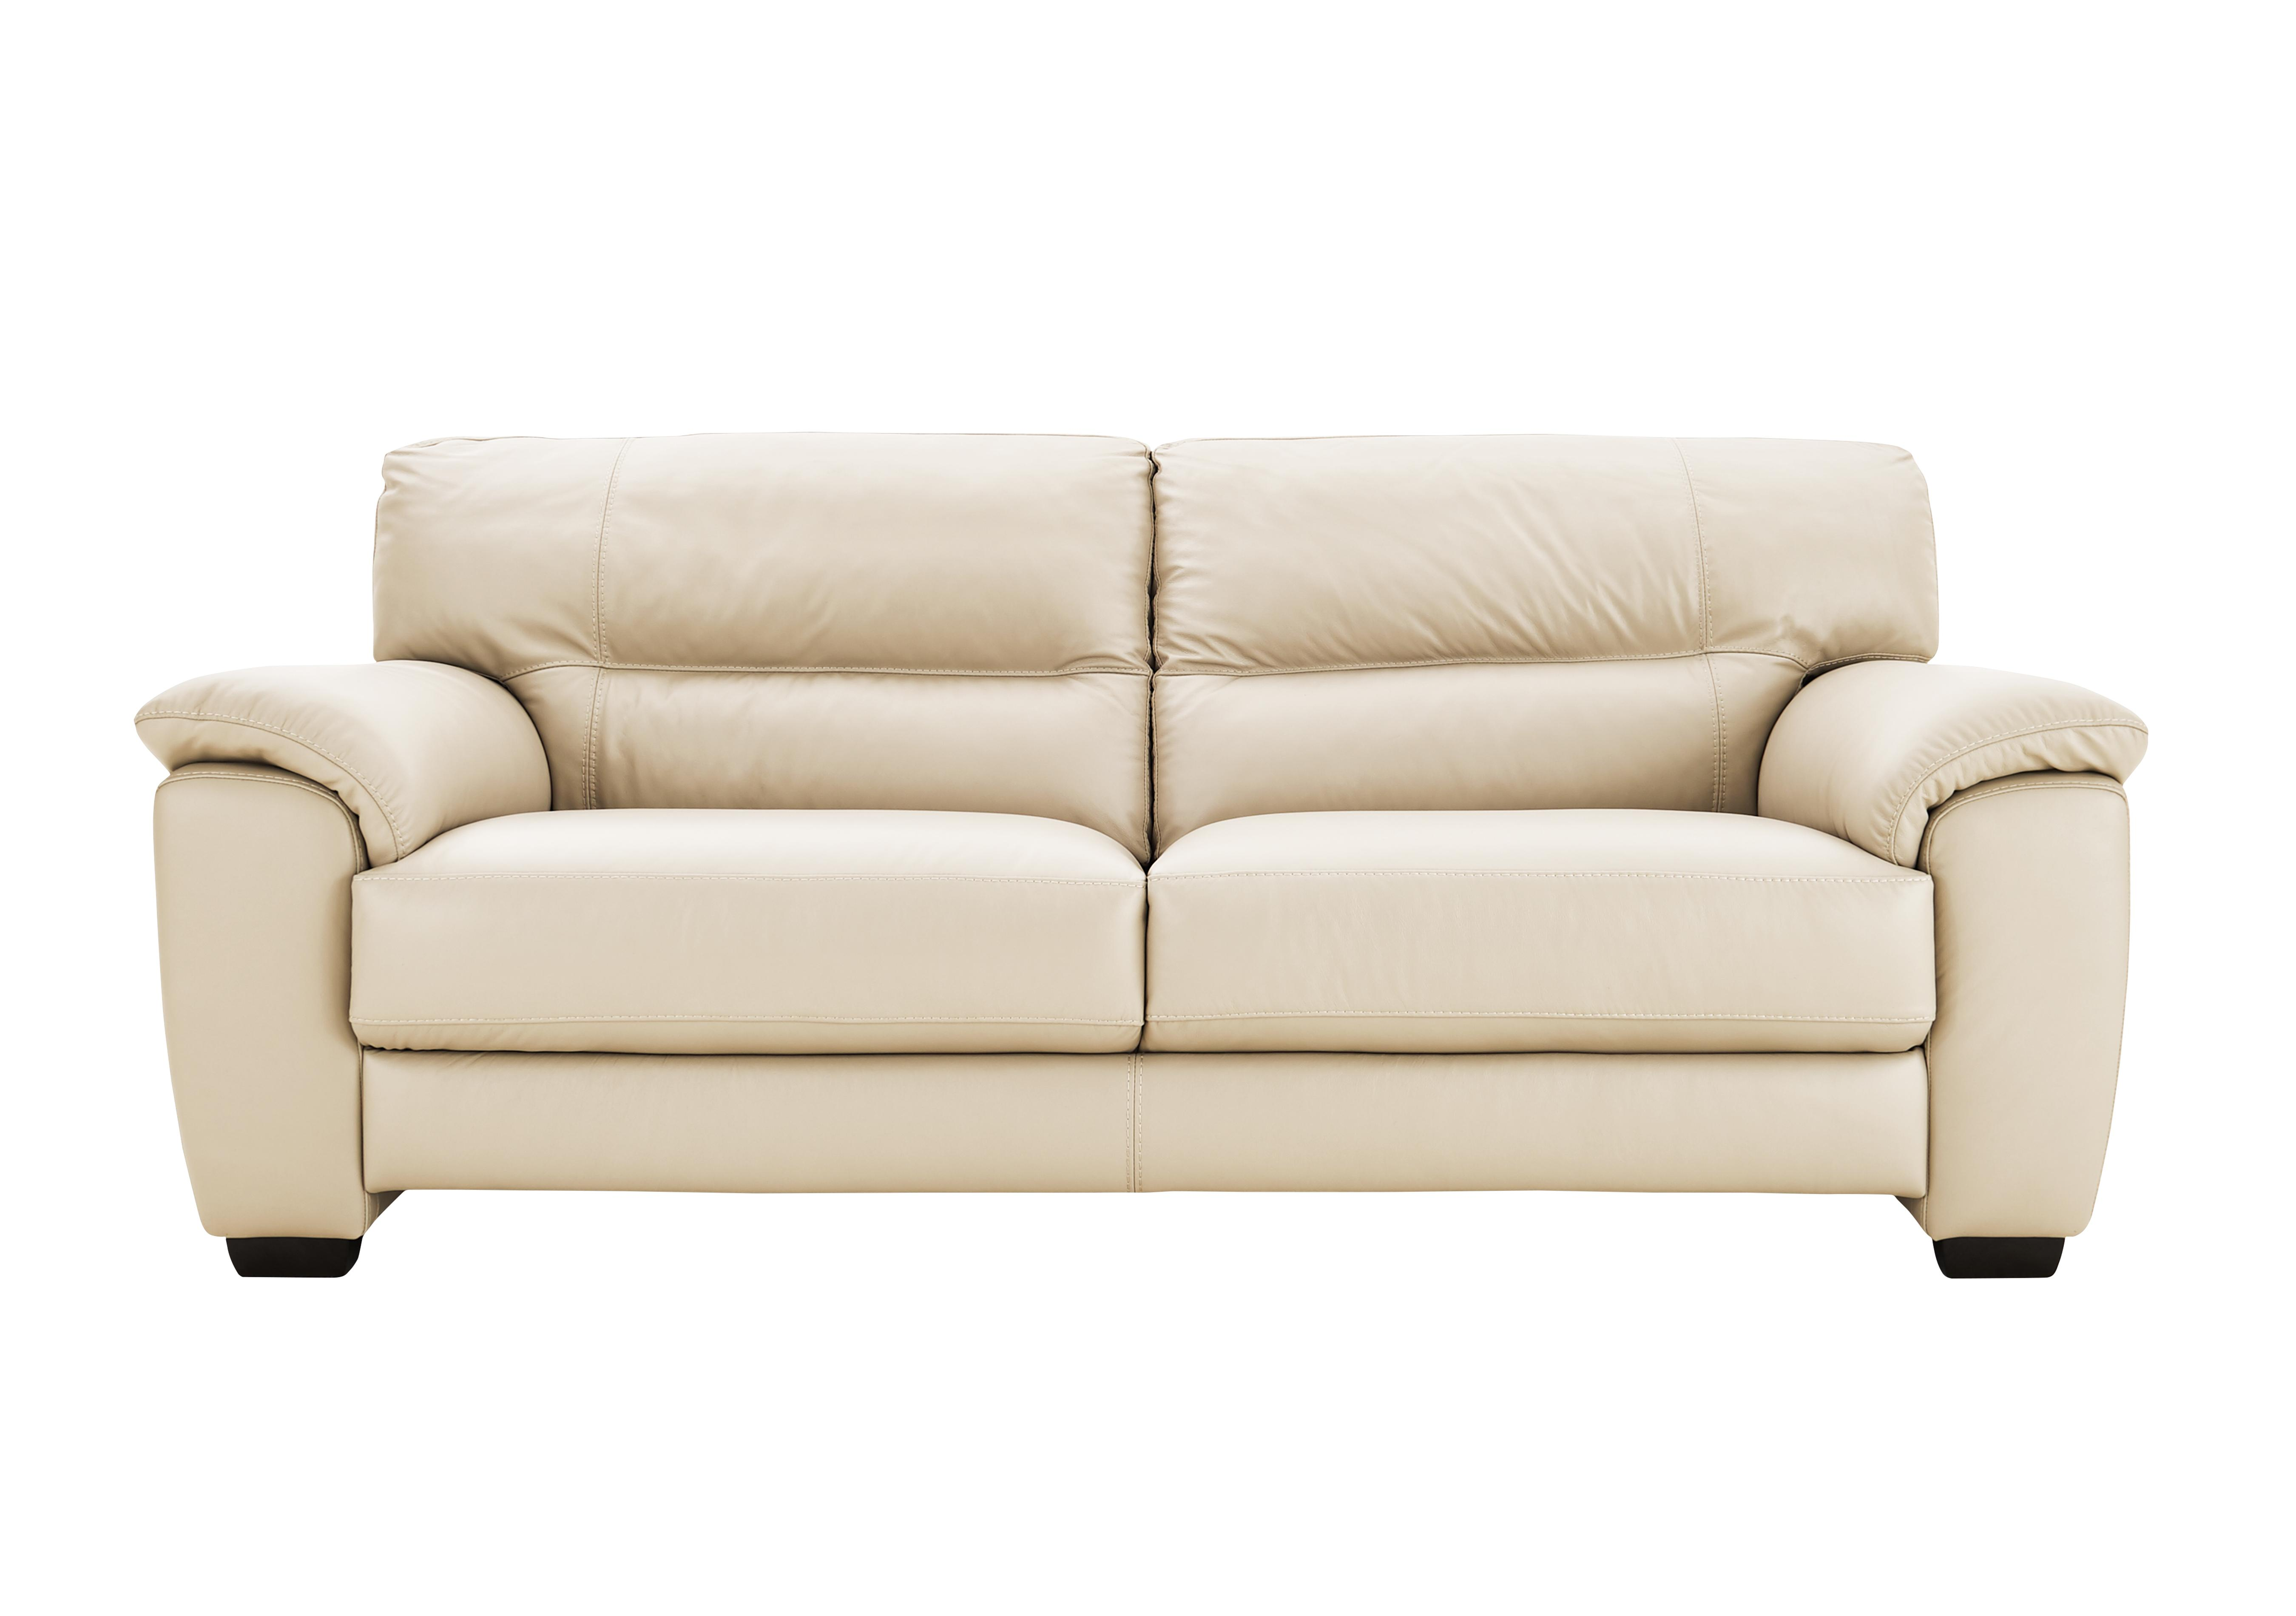 World Of Leather Shades 3 Seater Leather Sofa